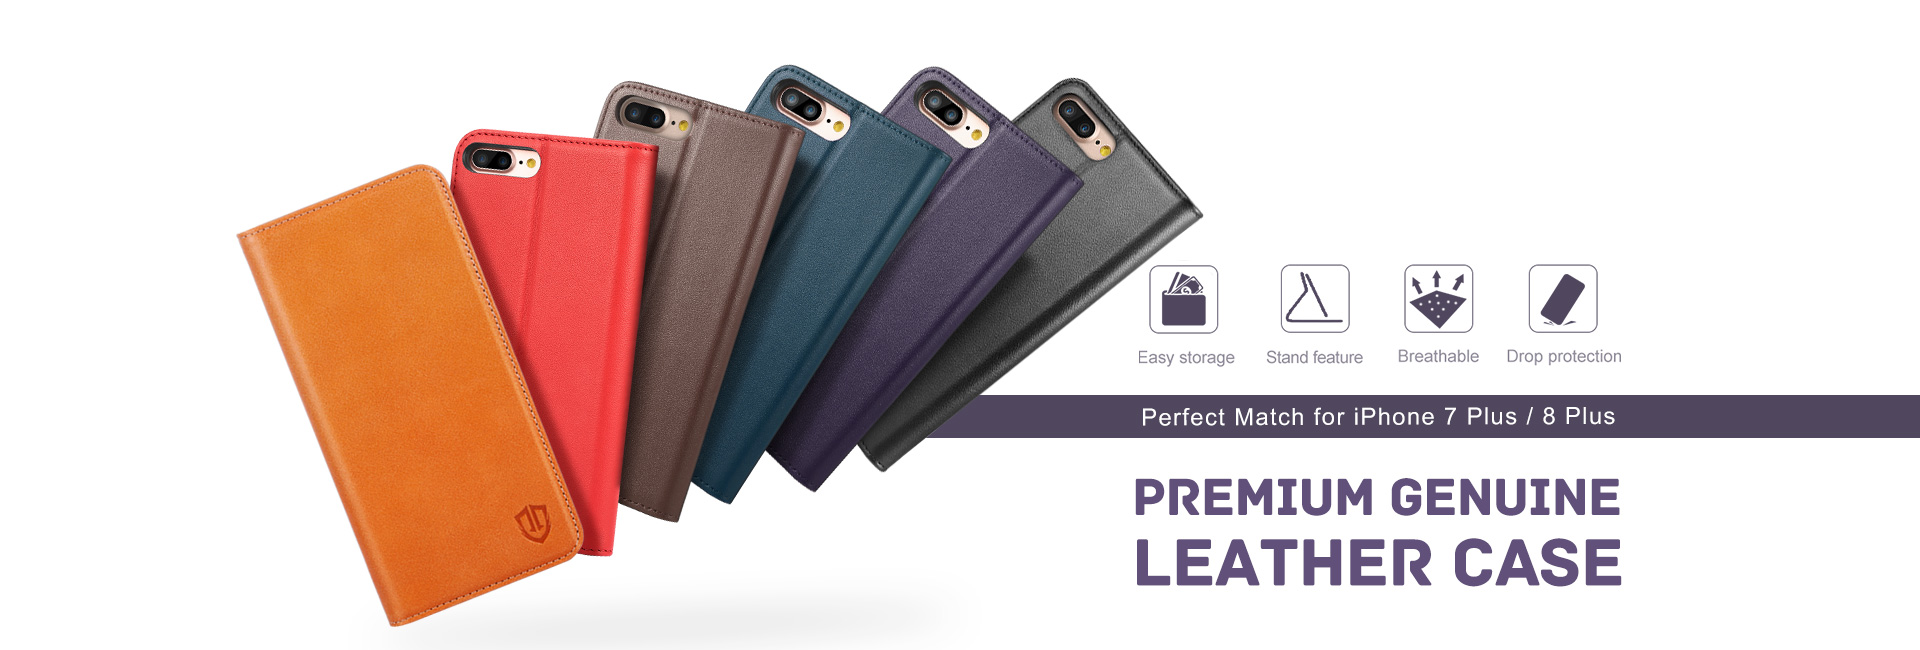 PREMIUM GENUINE LEATHER CASE